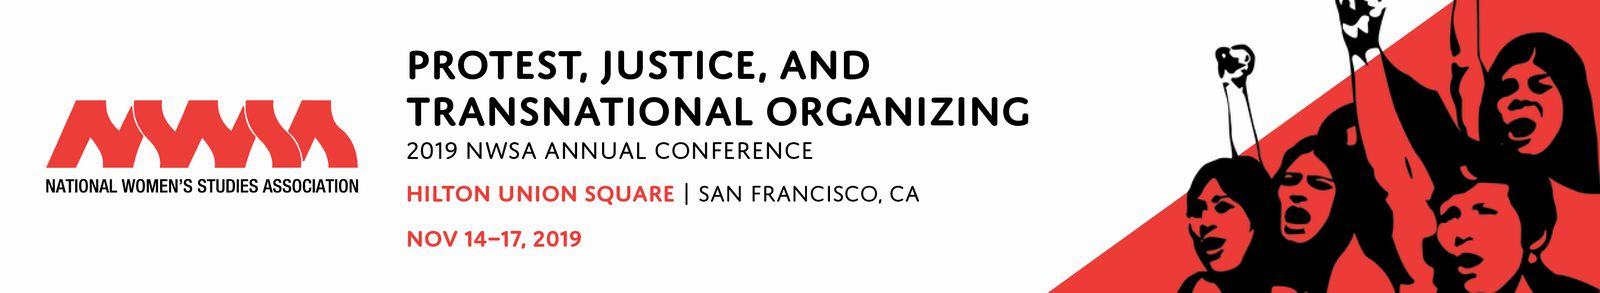 banner image of 2019 NWSA annual conference titled, Protest, Justice, and Transnational Organizing